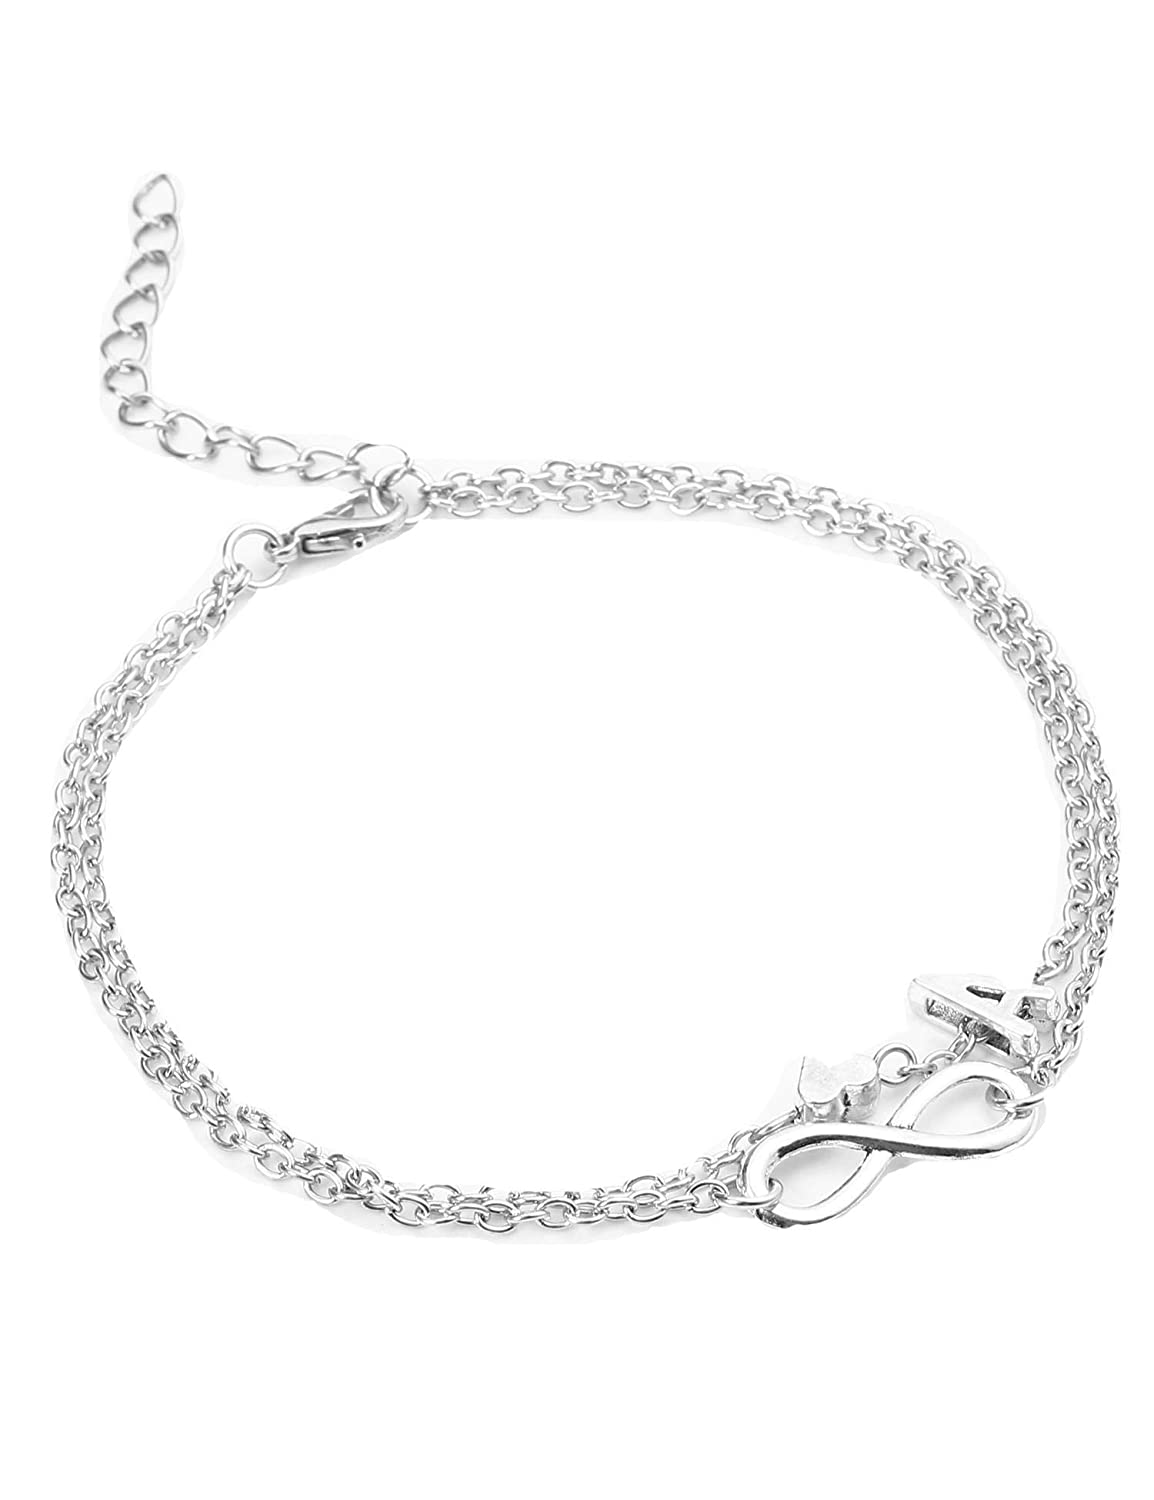 YENJO Love Heart Letter Ankle Chain Double Layer Barefoot Beach Anklet Jewelry Anklets A-Z